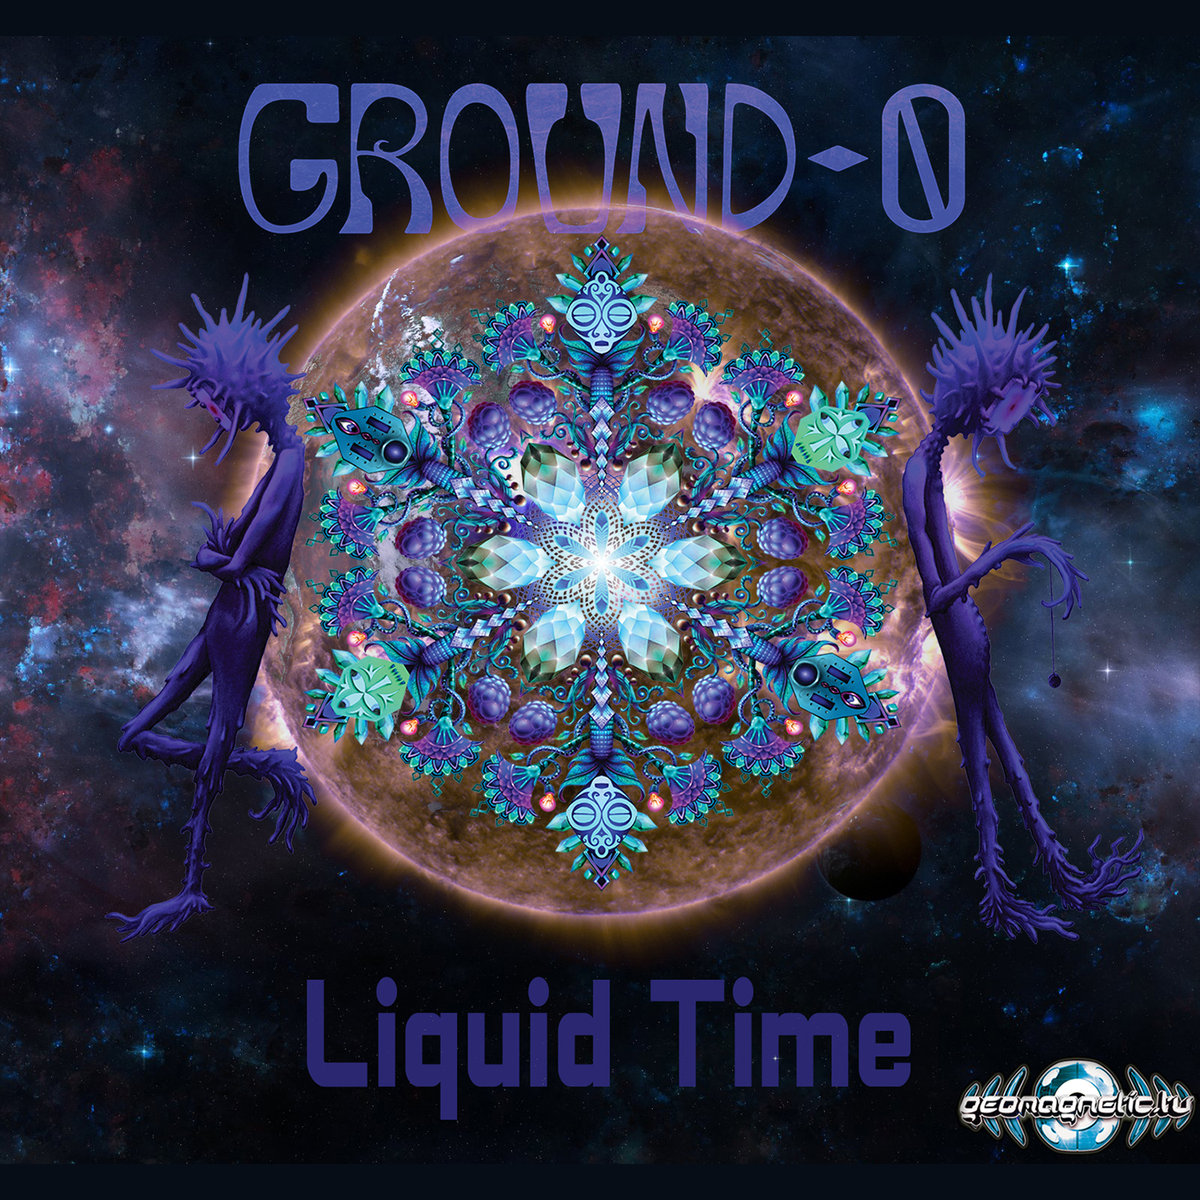 Ground 0 - Liquid Time (artwork)